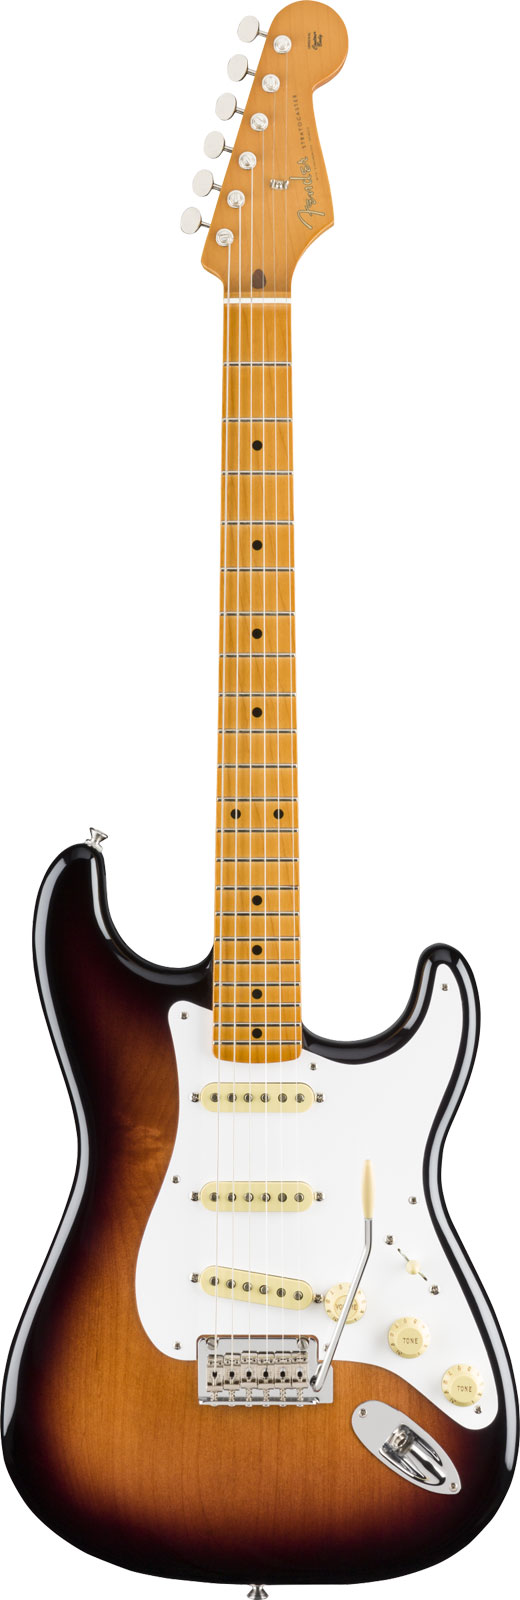 VINTERA '50S STRATOCASTER MODIFIED MN 2-COLOR SUNBURST